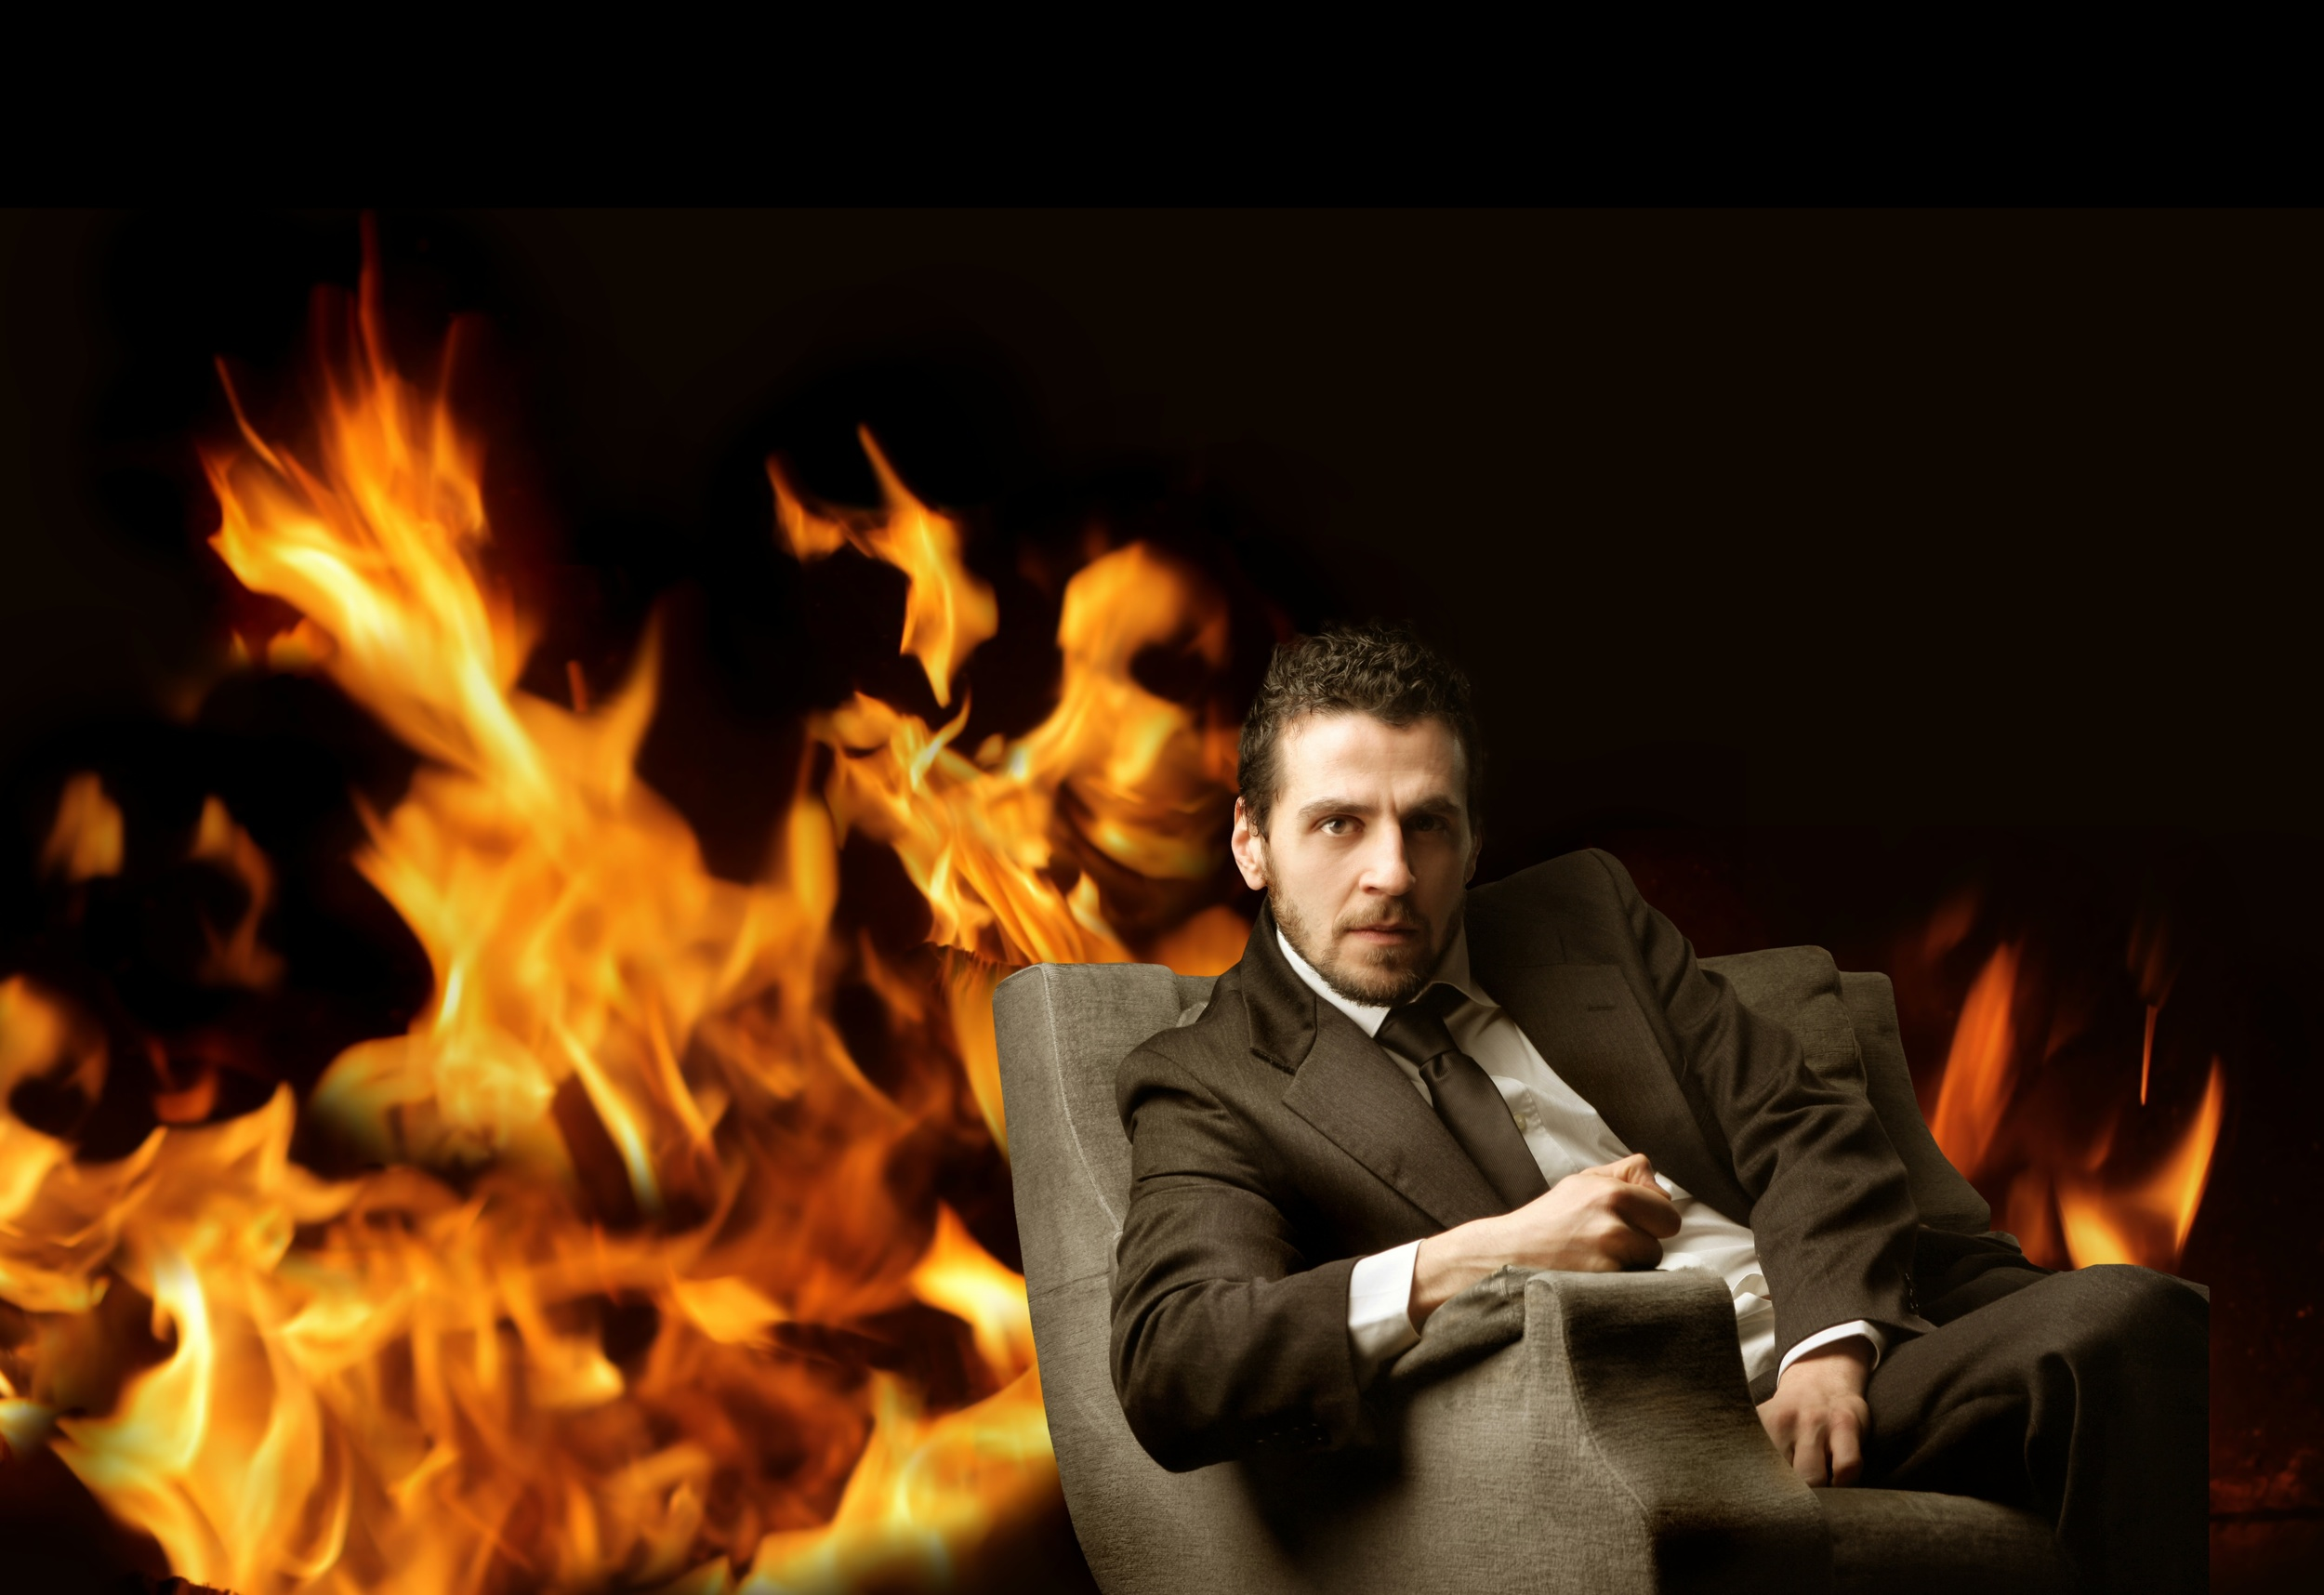 The Compliance Manager: Apologist, Arsonist or Fire-fighter?